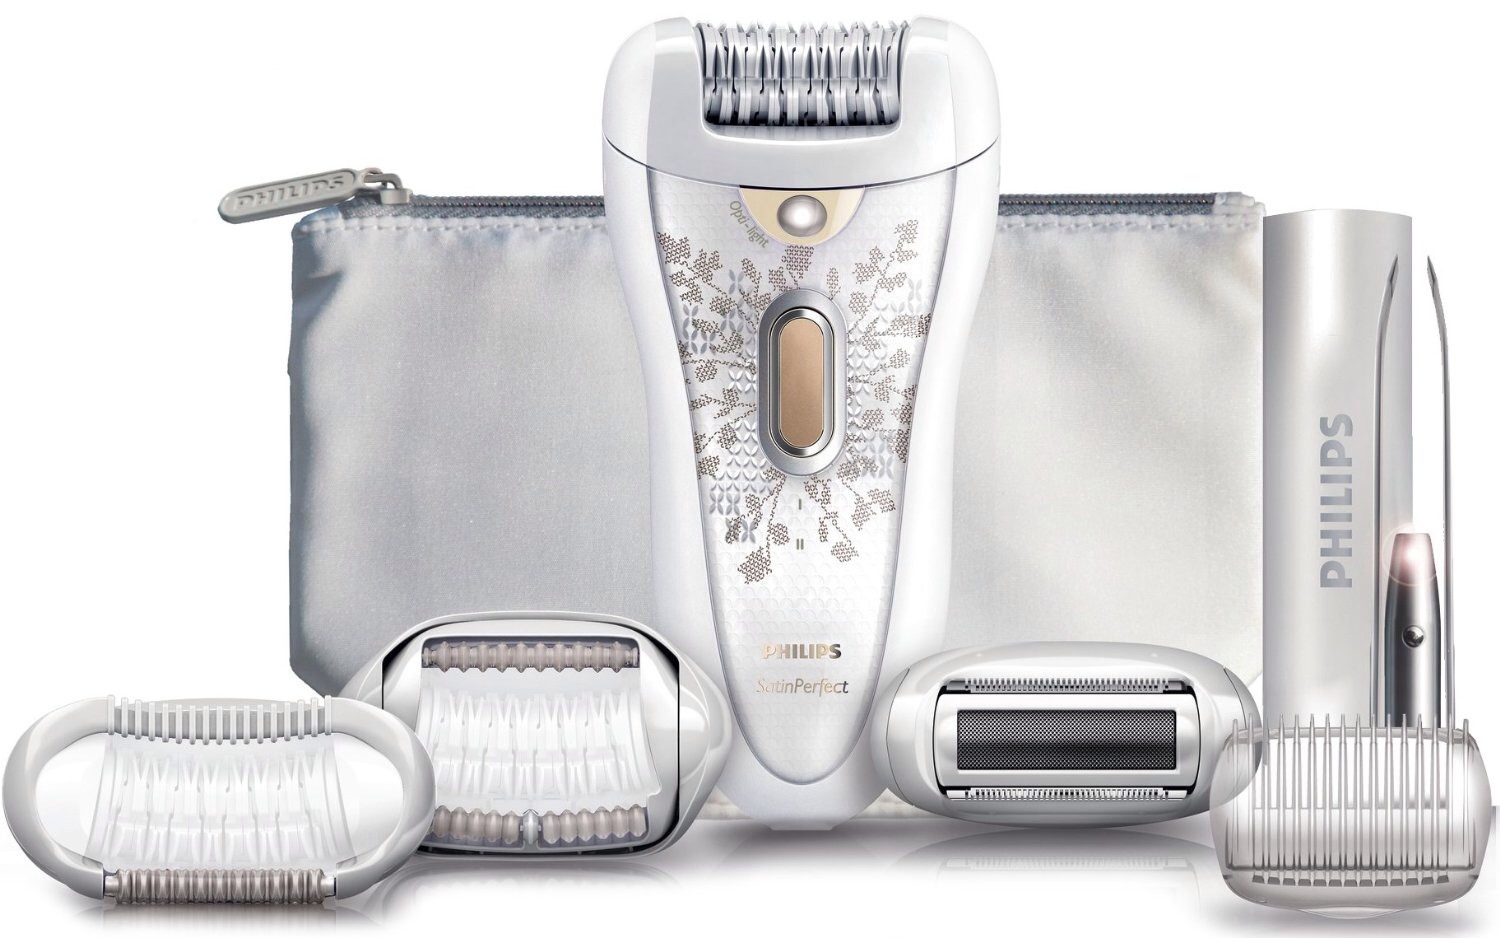 5. HP6576 Satin Perfect Deluxe Epilator is one of the prettiest hair removal gadgest. The sleek design and the ergonomic shape. It's feminine and powerful, just like all women are.